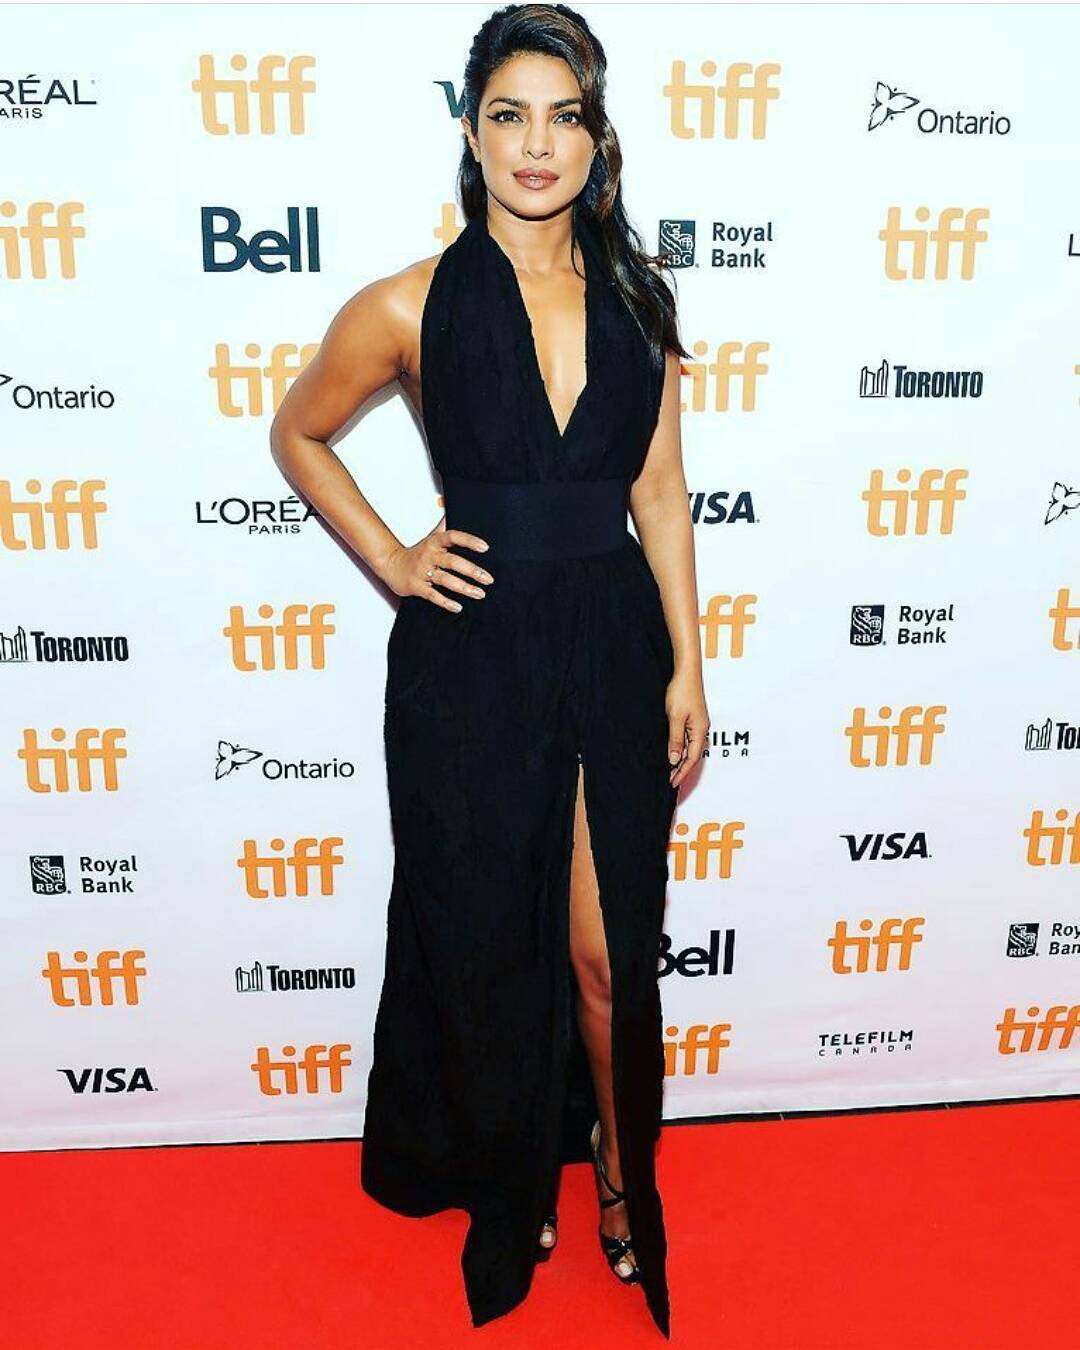 Priyanka Chopra Flaunts Her Sexy Thigh High Slit Zaid Affan's Black Gown At TIFF 2017